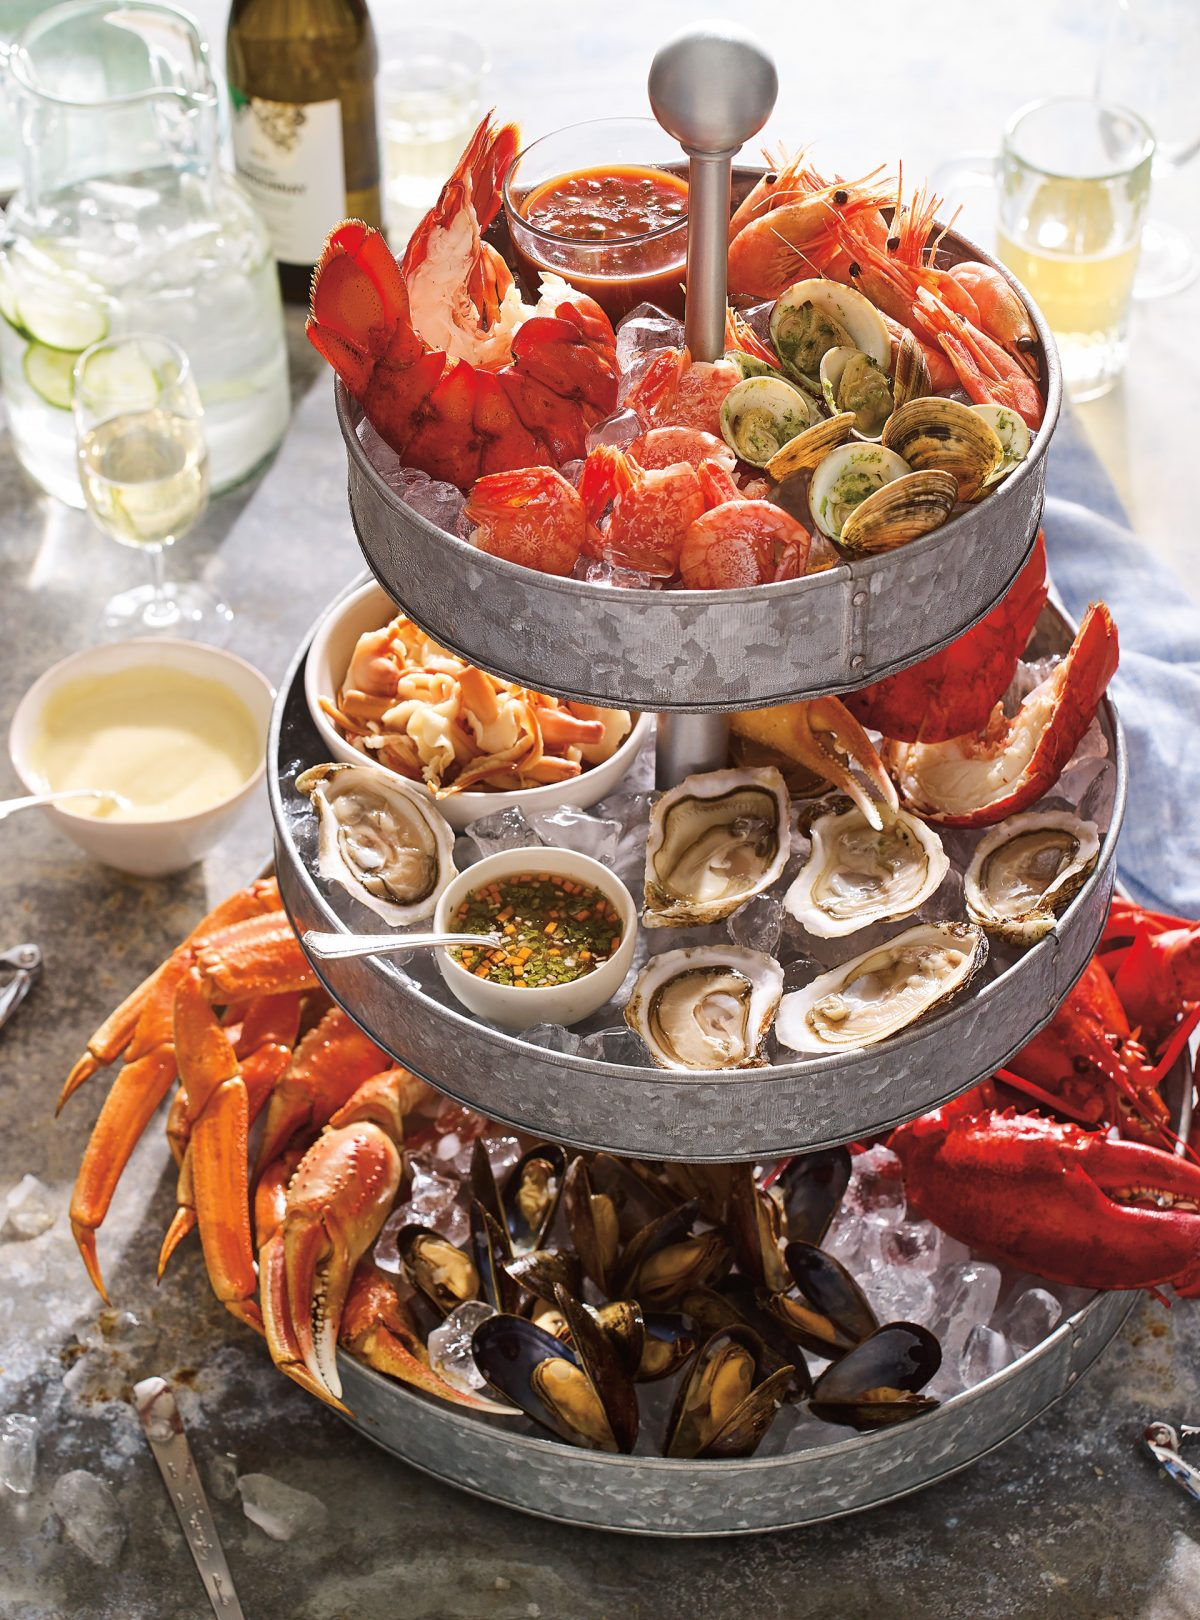 Amazing Seafood Places To Taste The Summer seafood Amazing Seafood Places To Taste The Summer 7986 e1563977231635